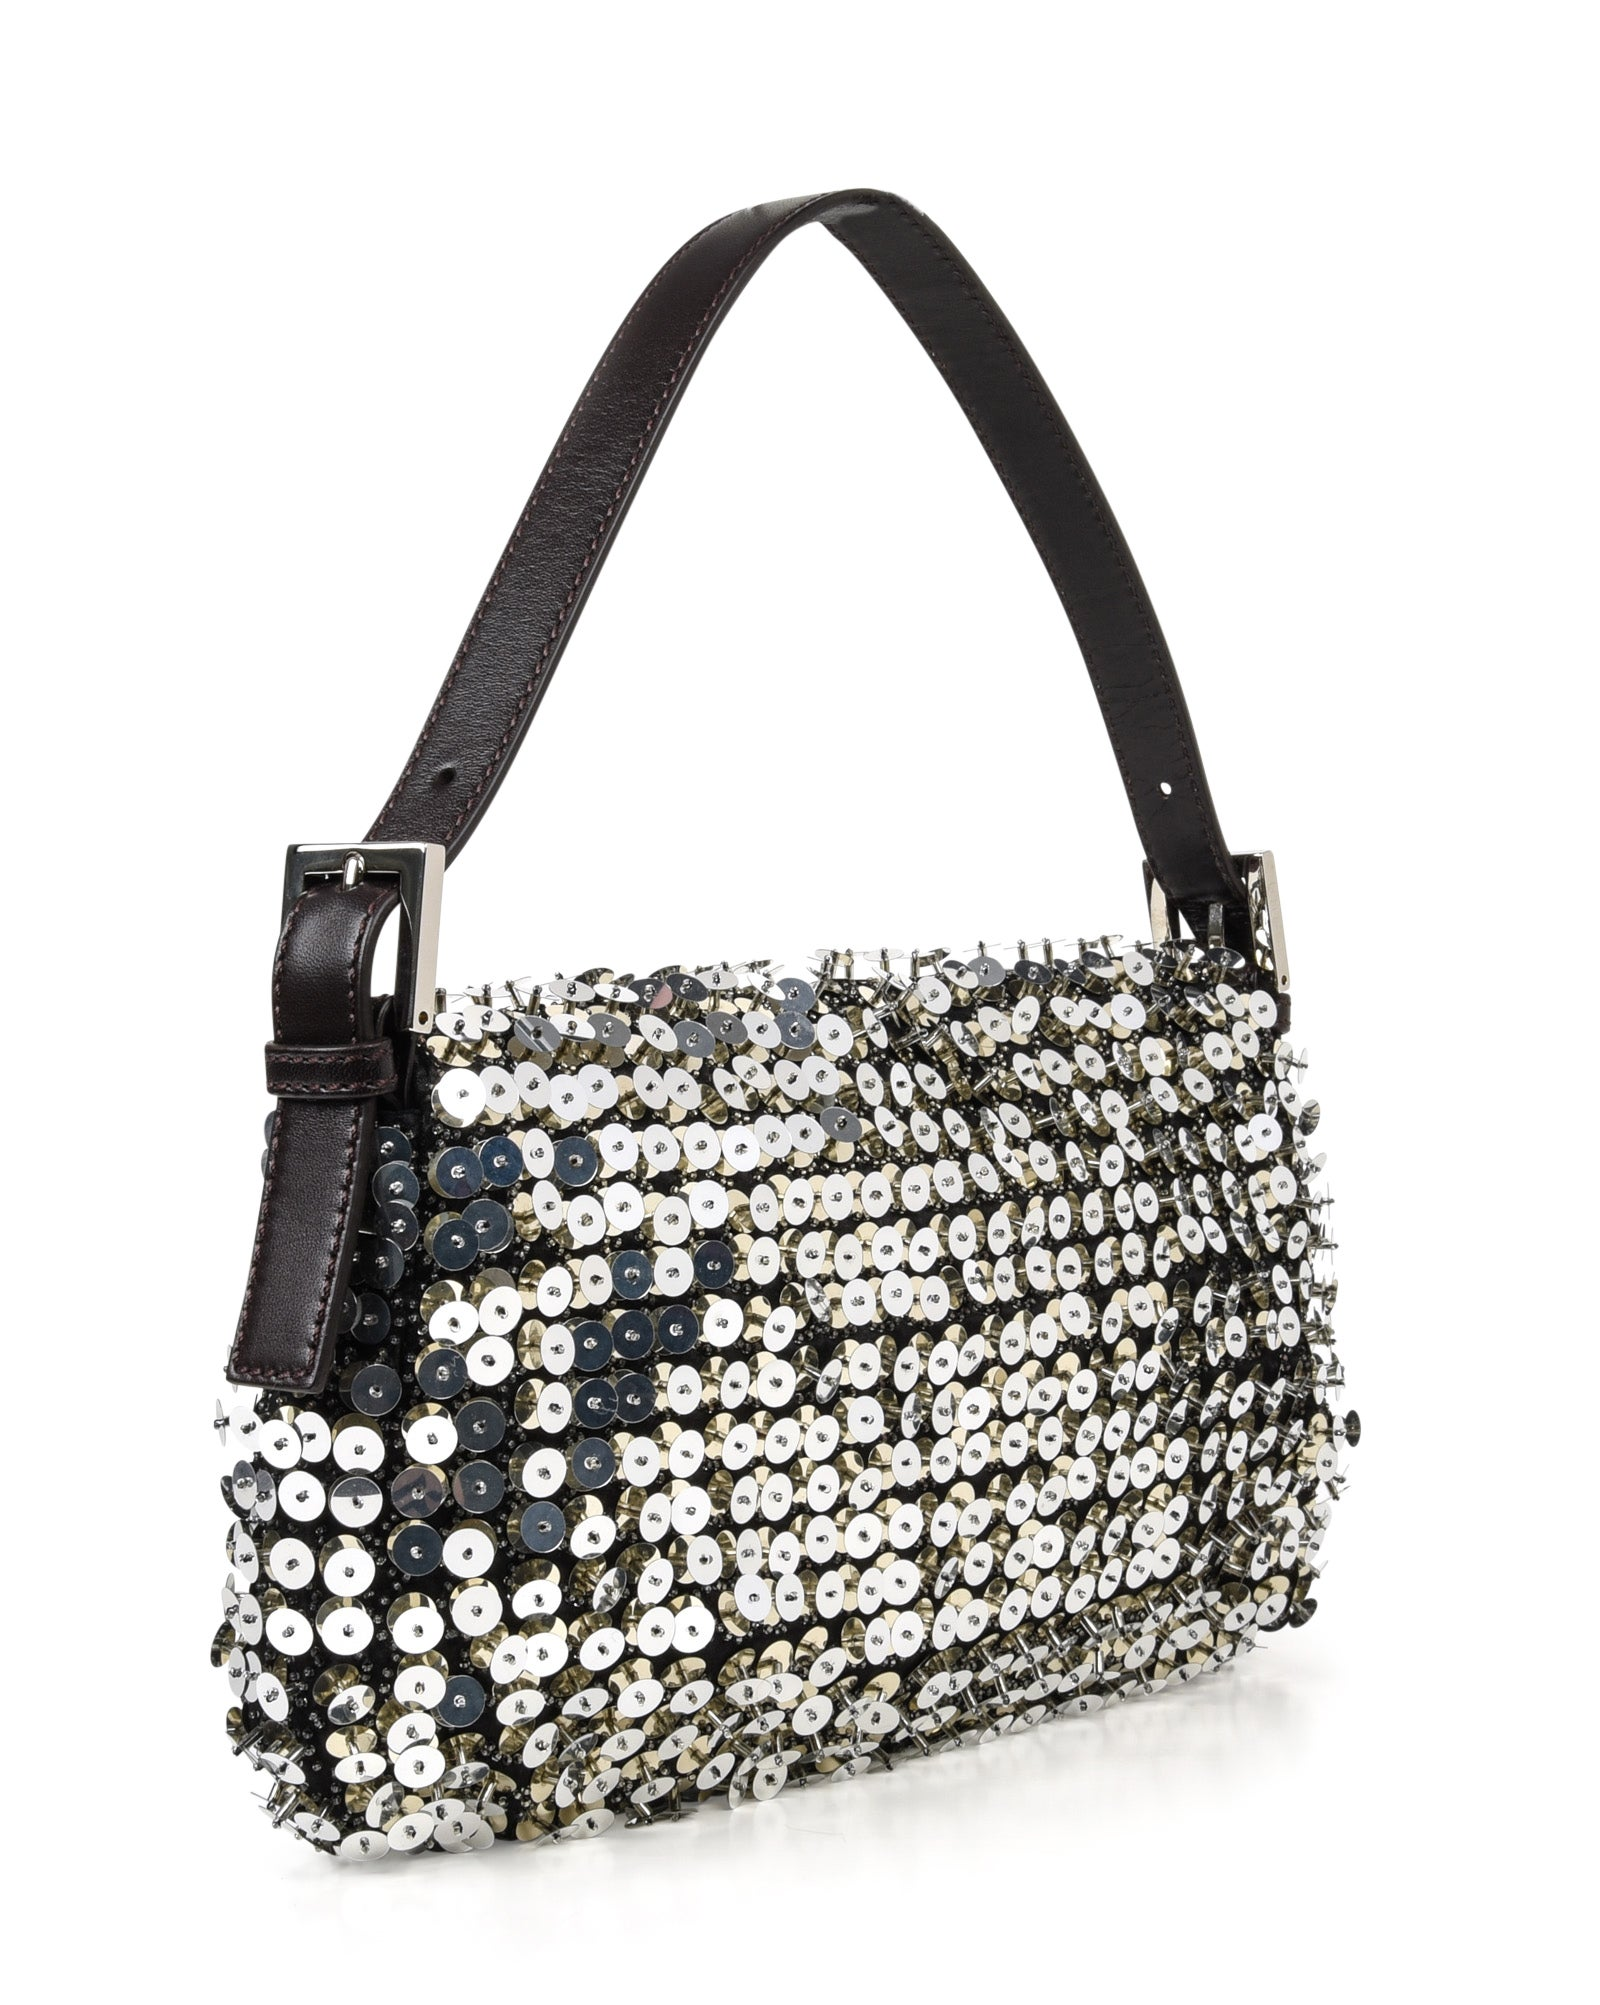 f45c3350aad5 Fendi Bag Baguette Raised Silver Metallic Sequined and Beaded For Sale at  1stdibs